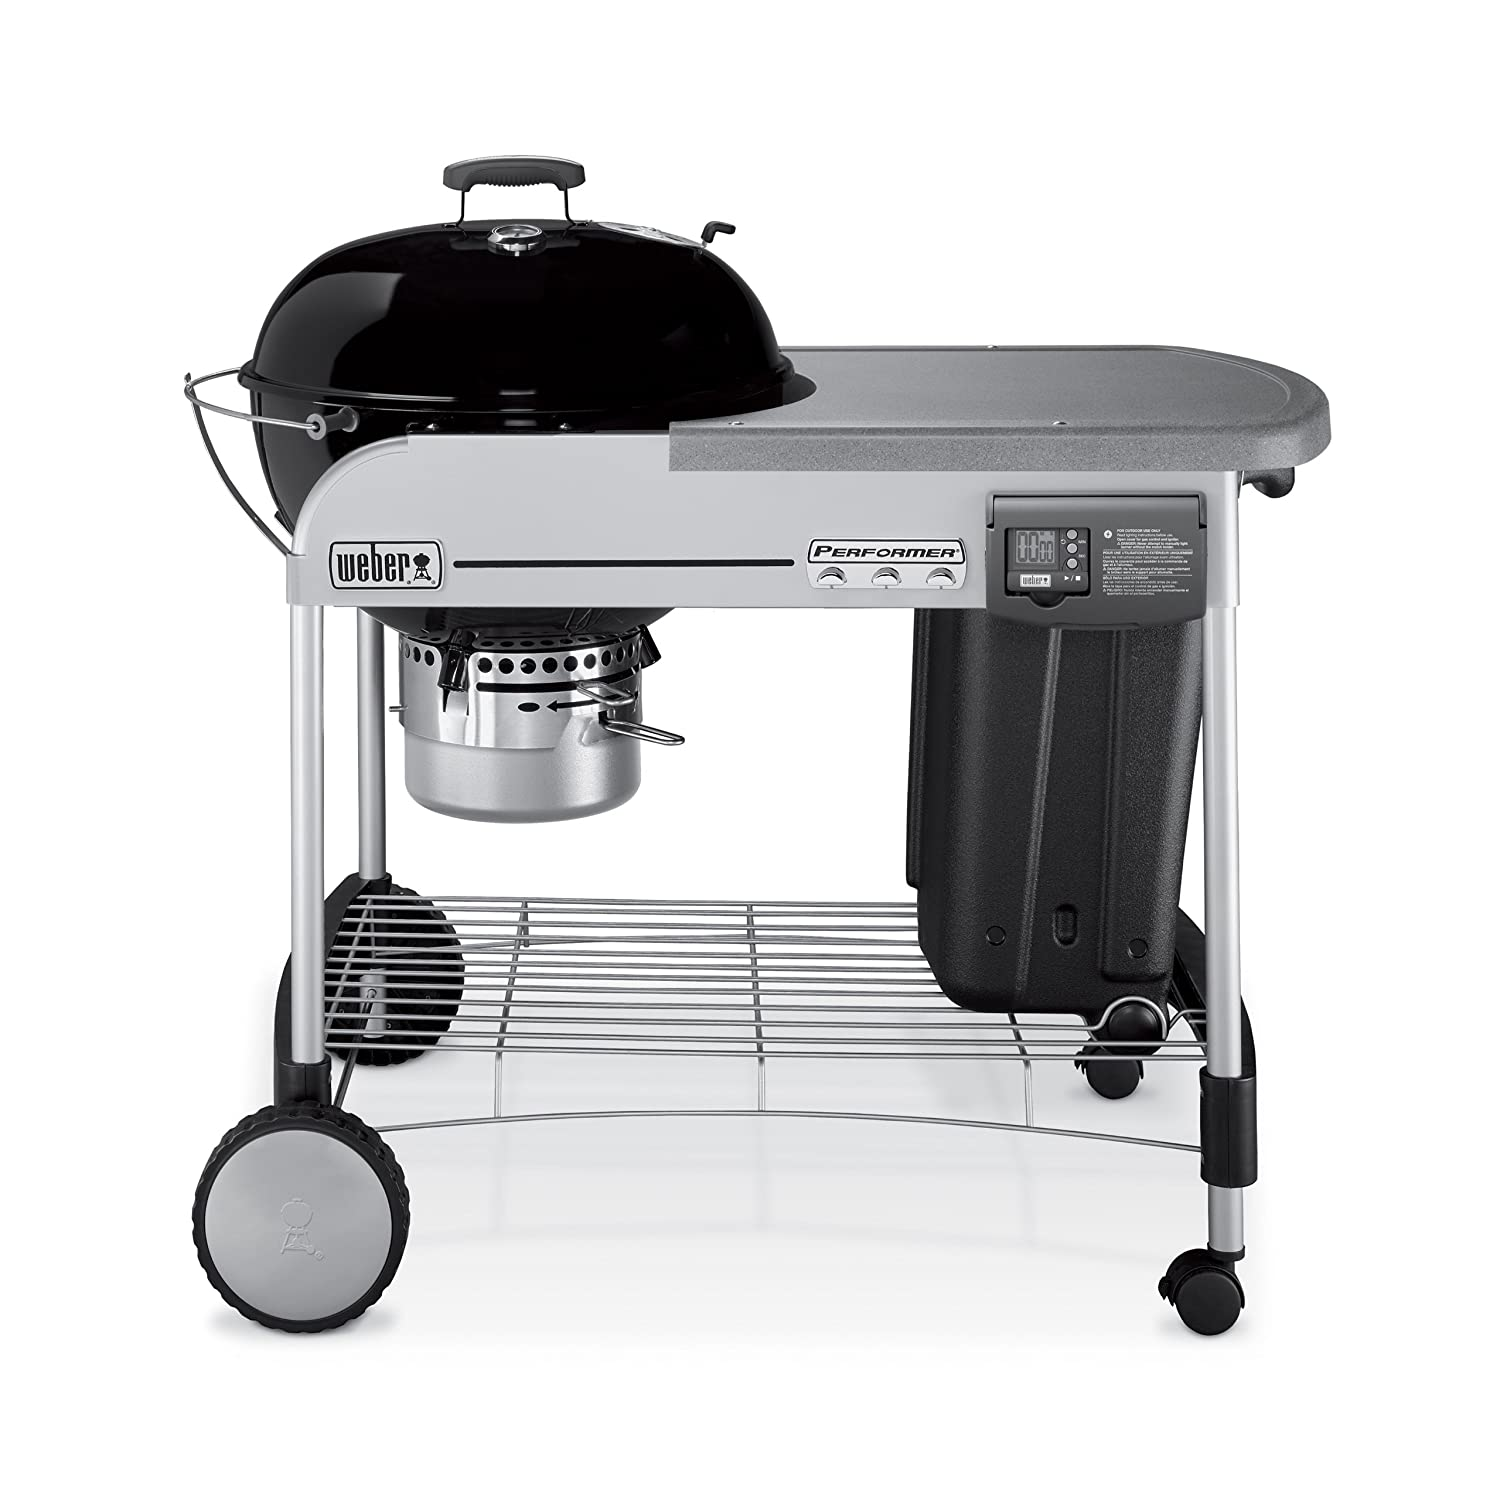 Amazon.com : Weber 1481001 Performer Platinum Charcoal Grill ...